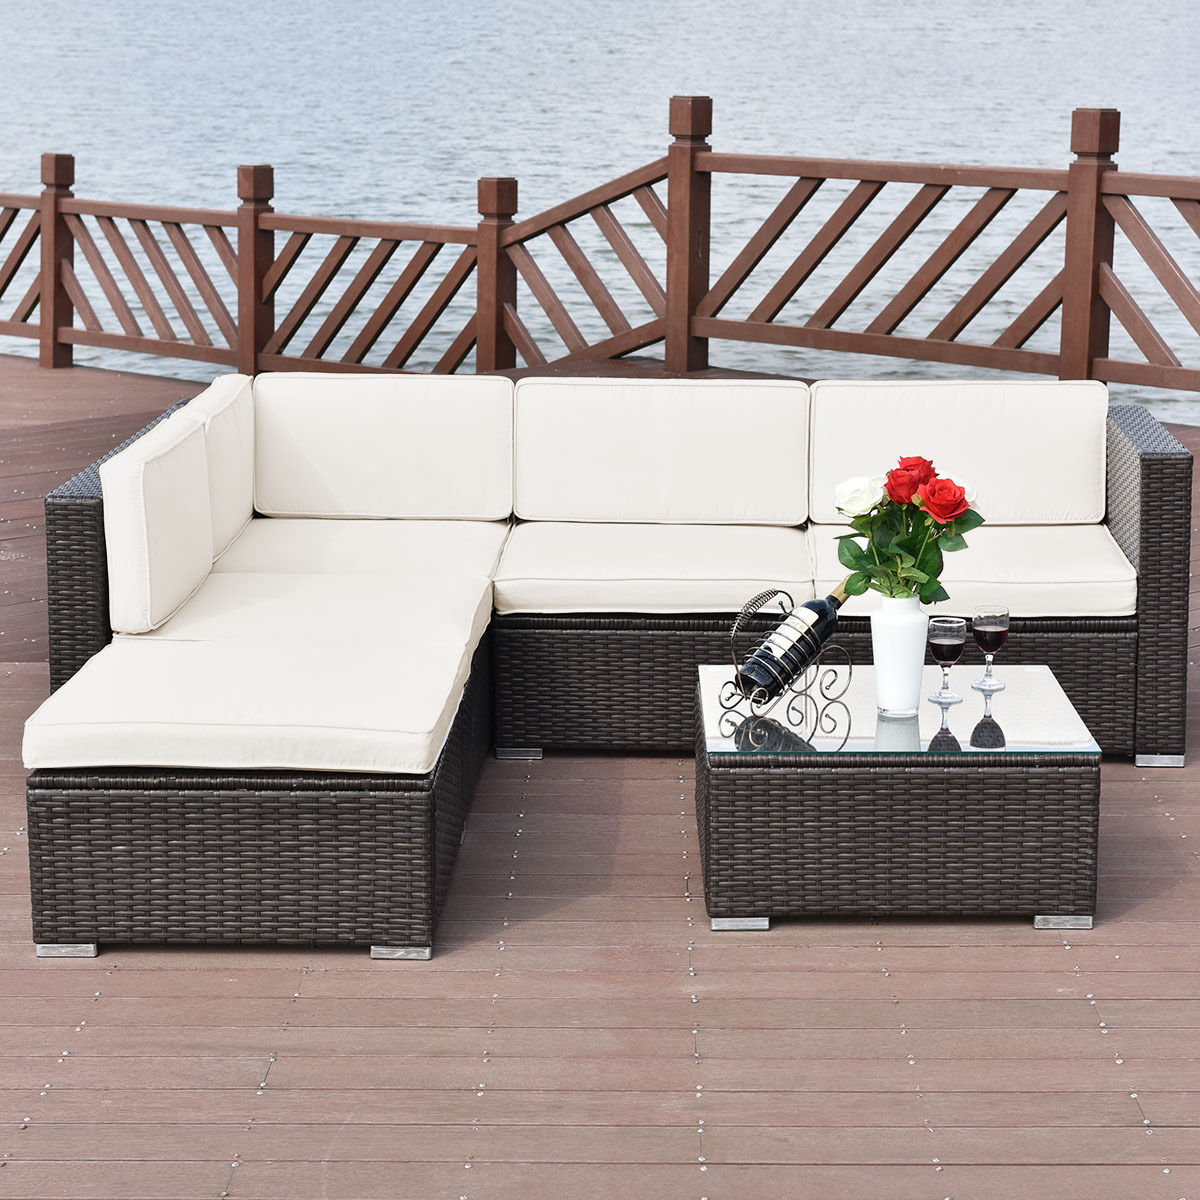 Costway 4 PCS Outdoor Patio Rattan Wicker Furniture Set Loveseat Cushioned Yard Garden by Costway